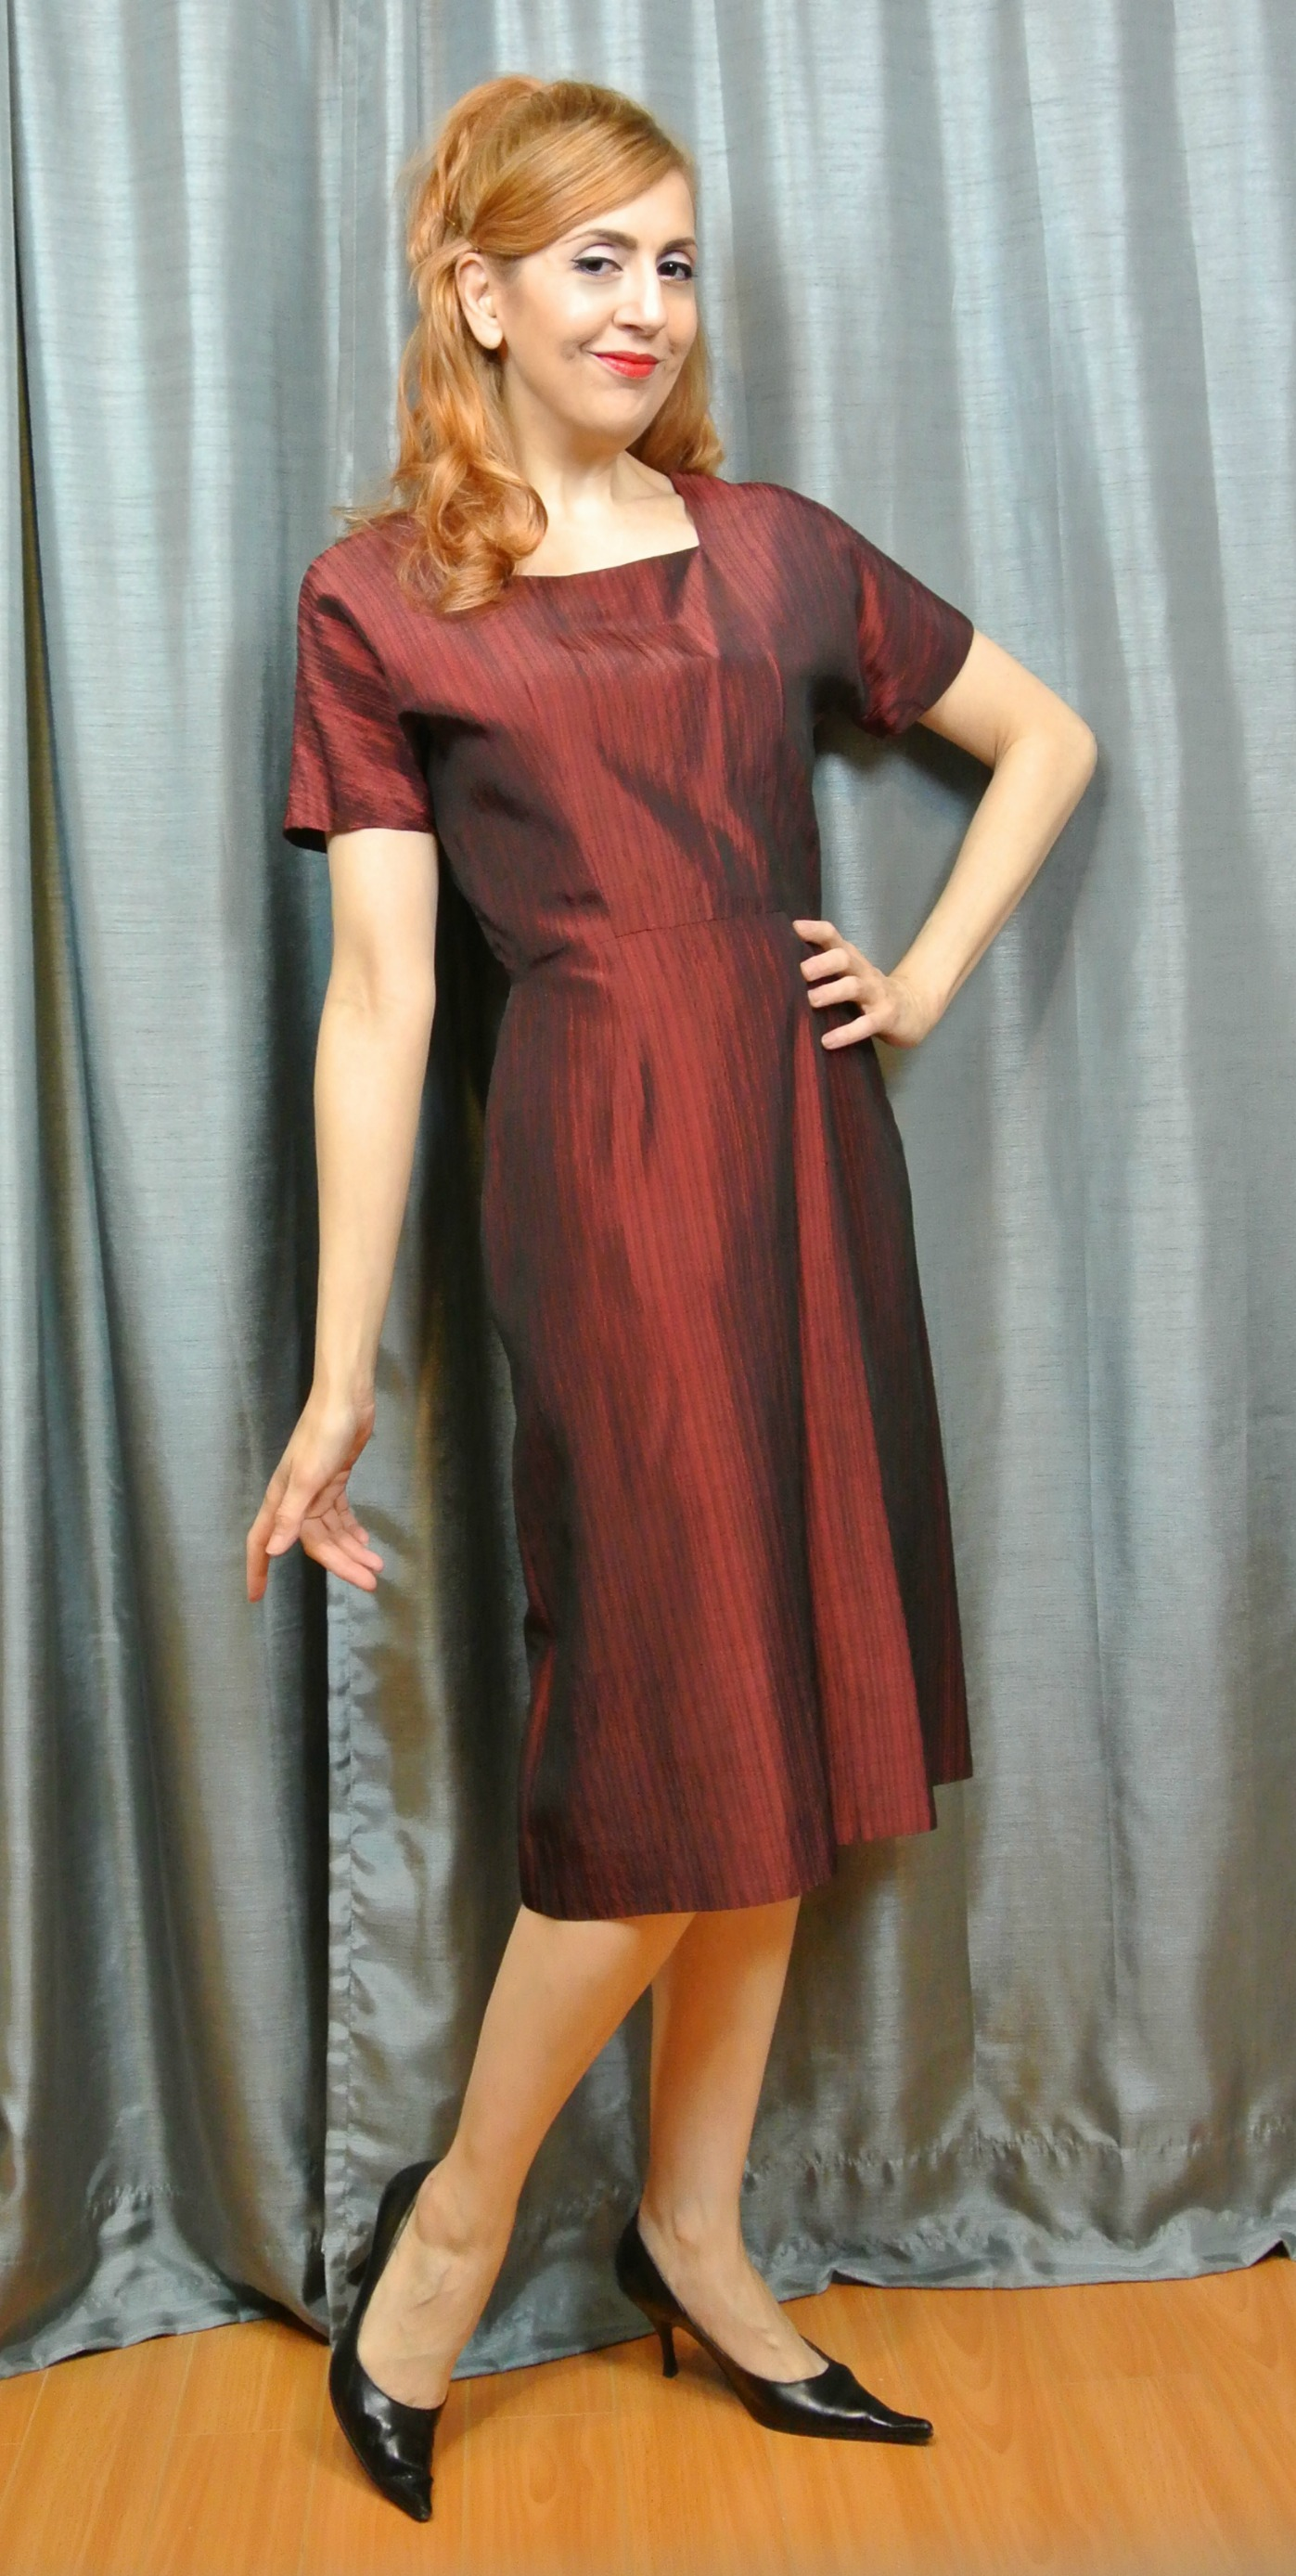 Stiletto City Store - Red Vintage Dress